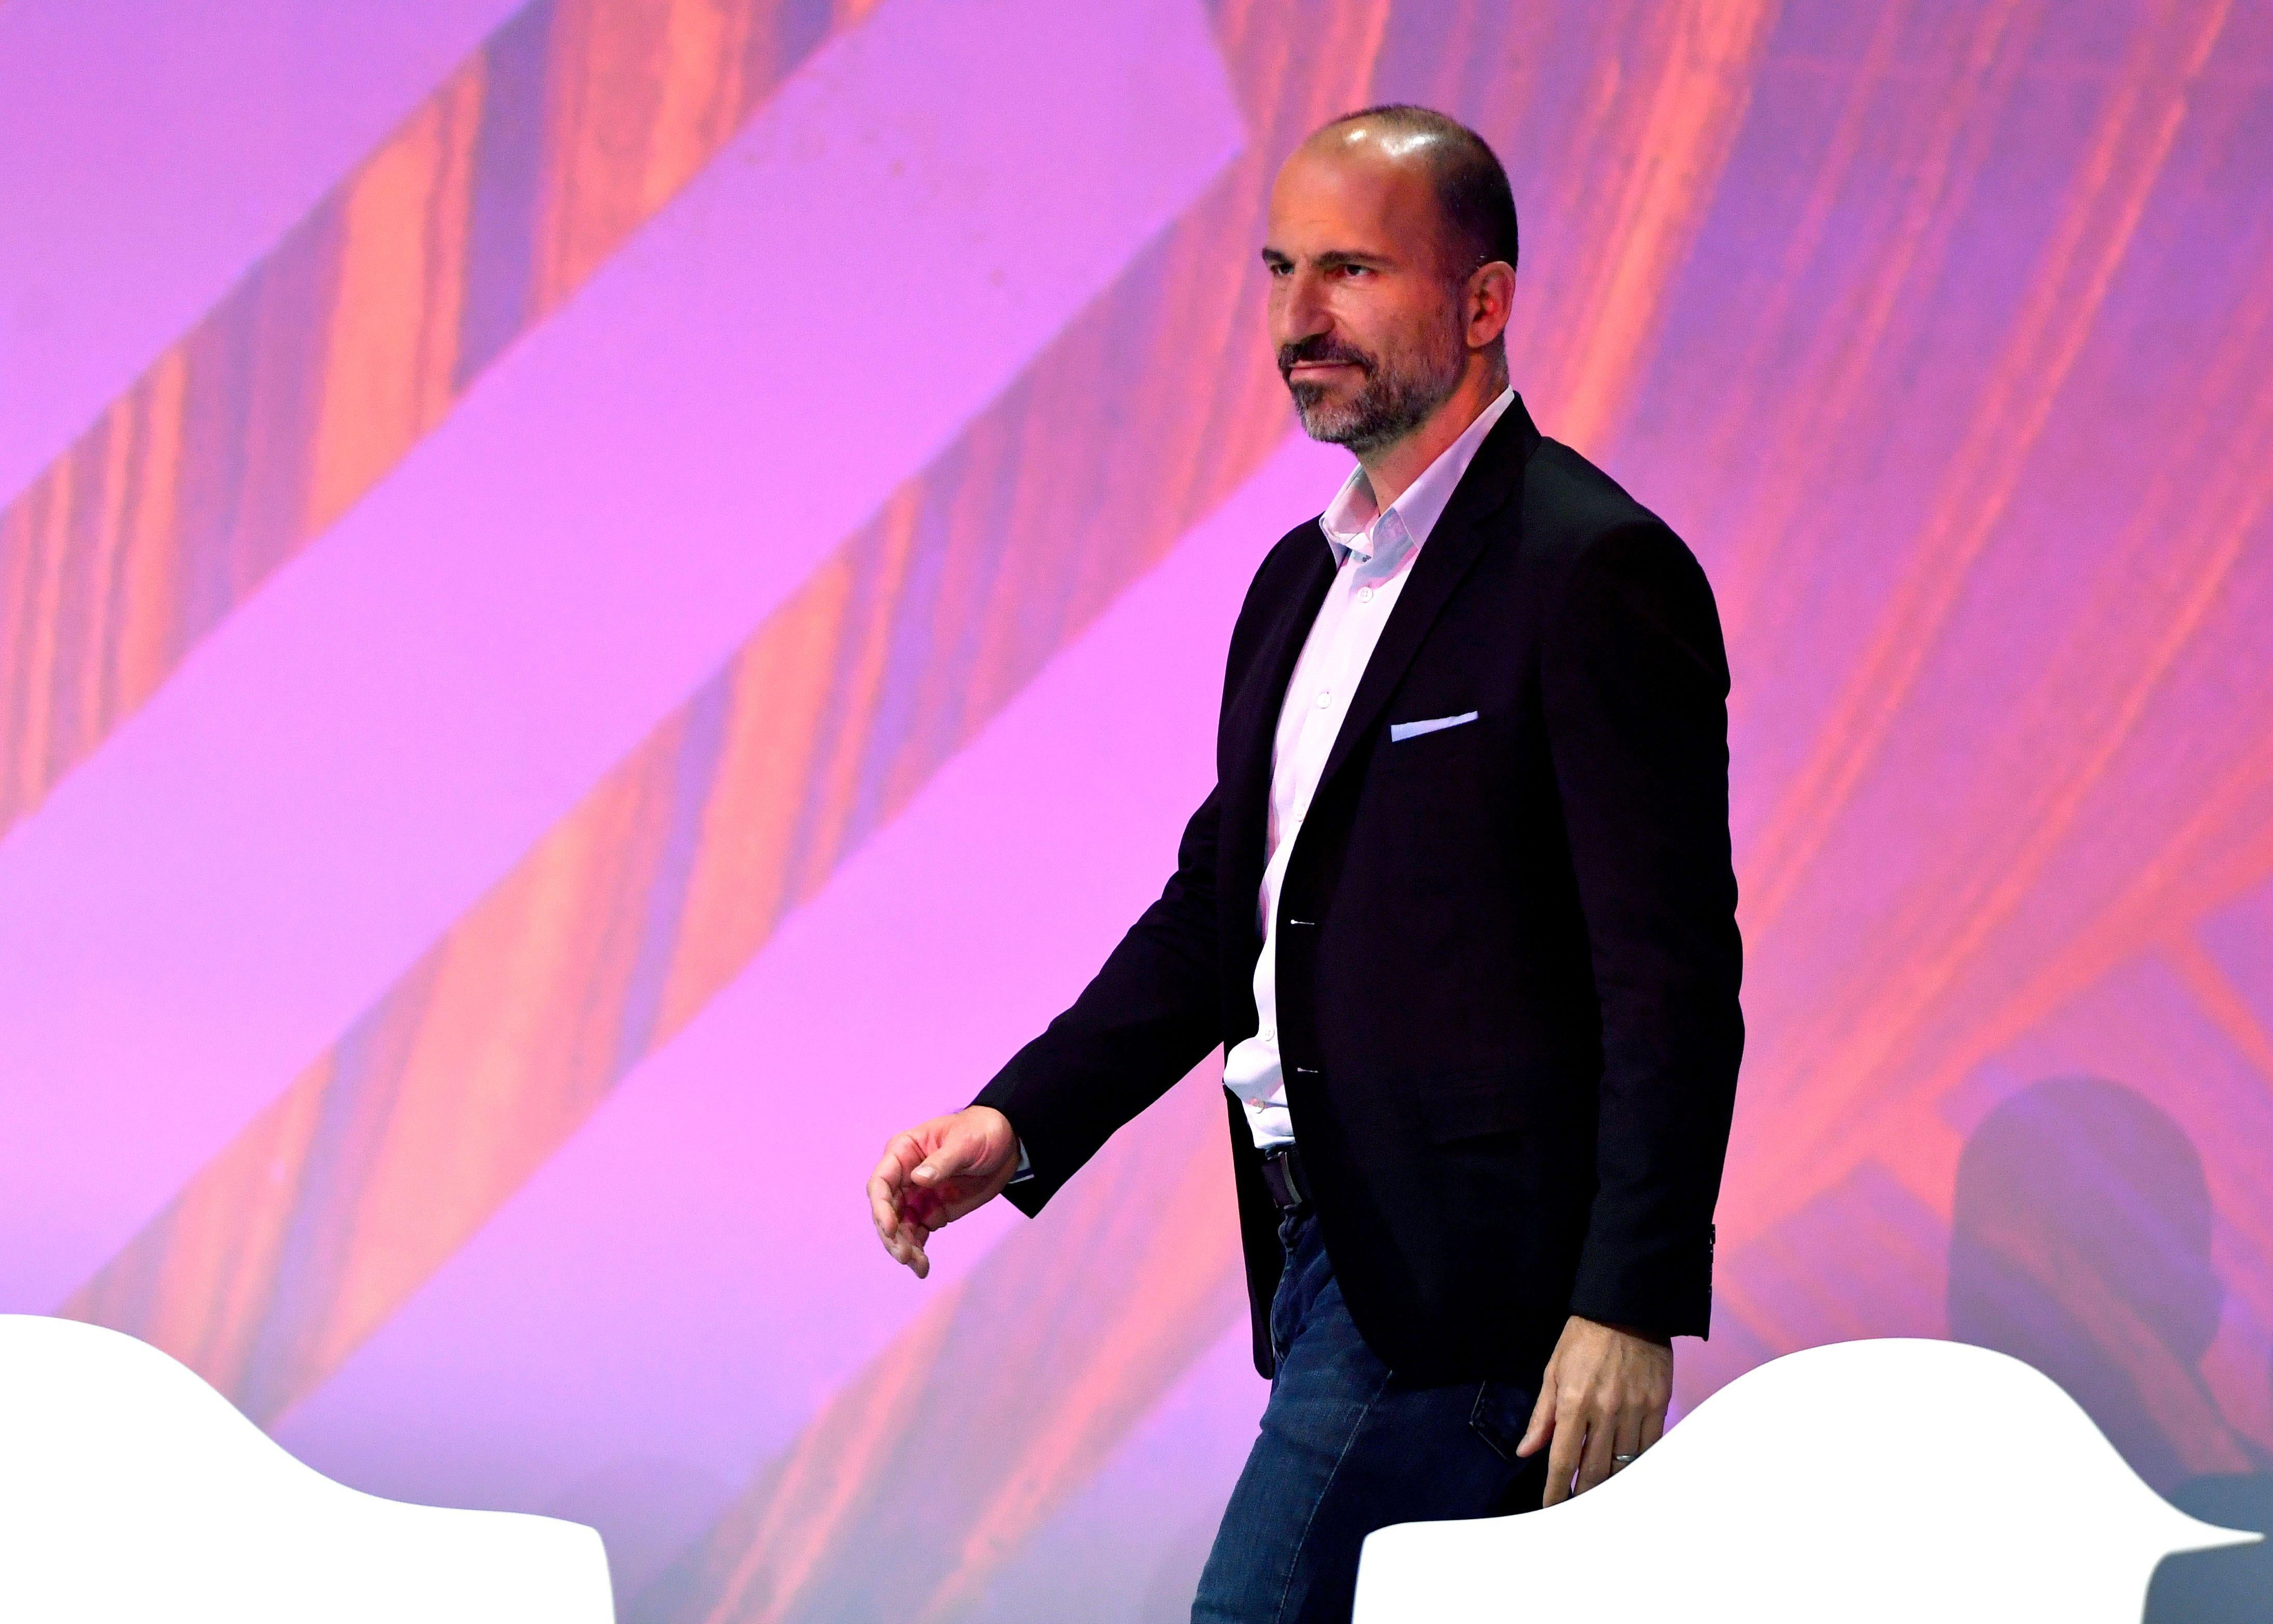 Uber's CEO Dara Khosrowshahi arrives to deliver a speech at the VivaTech (Viva Technology) trade fair in Paris, on May 24, 2018. (Photo by GERARD JULIEN / AFP)        (Photo credit should read GERARD JULIEN/AFP/Getty Images)